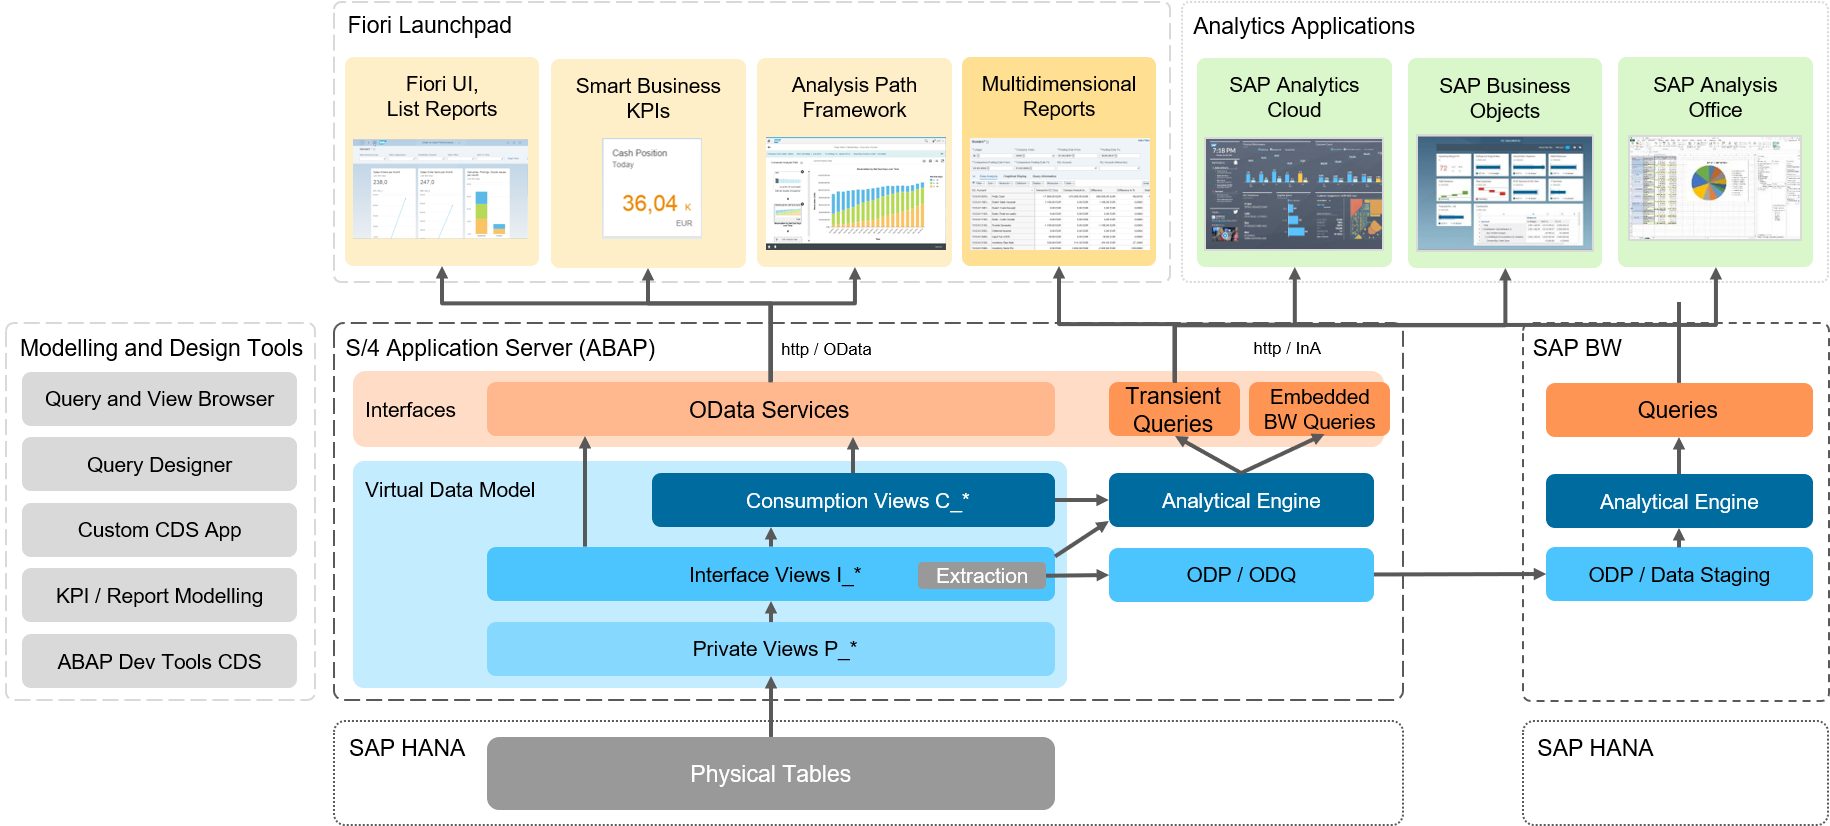 S/4HANA%20embedded%20analytics%20architecture%20overview